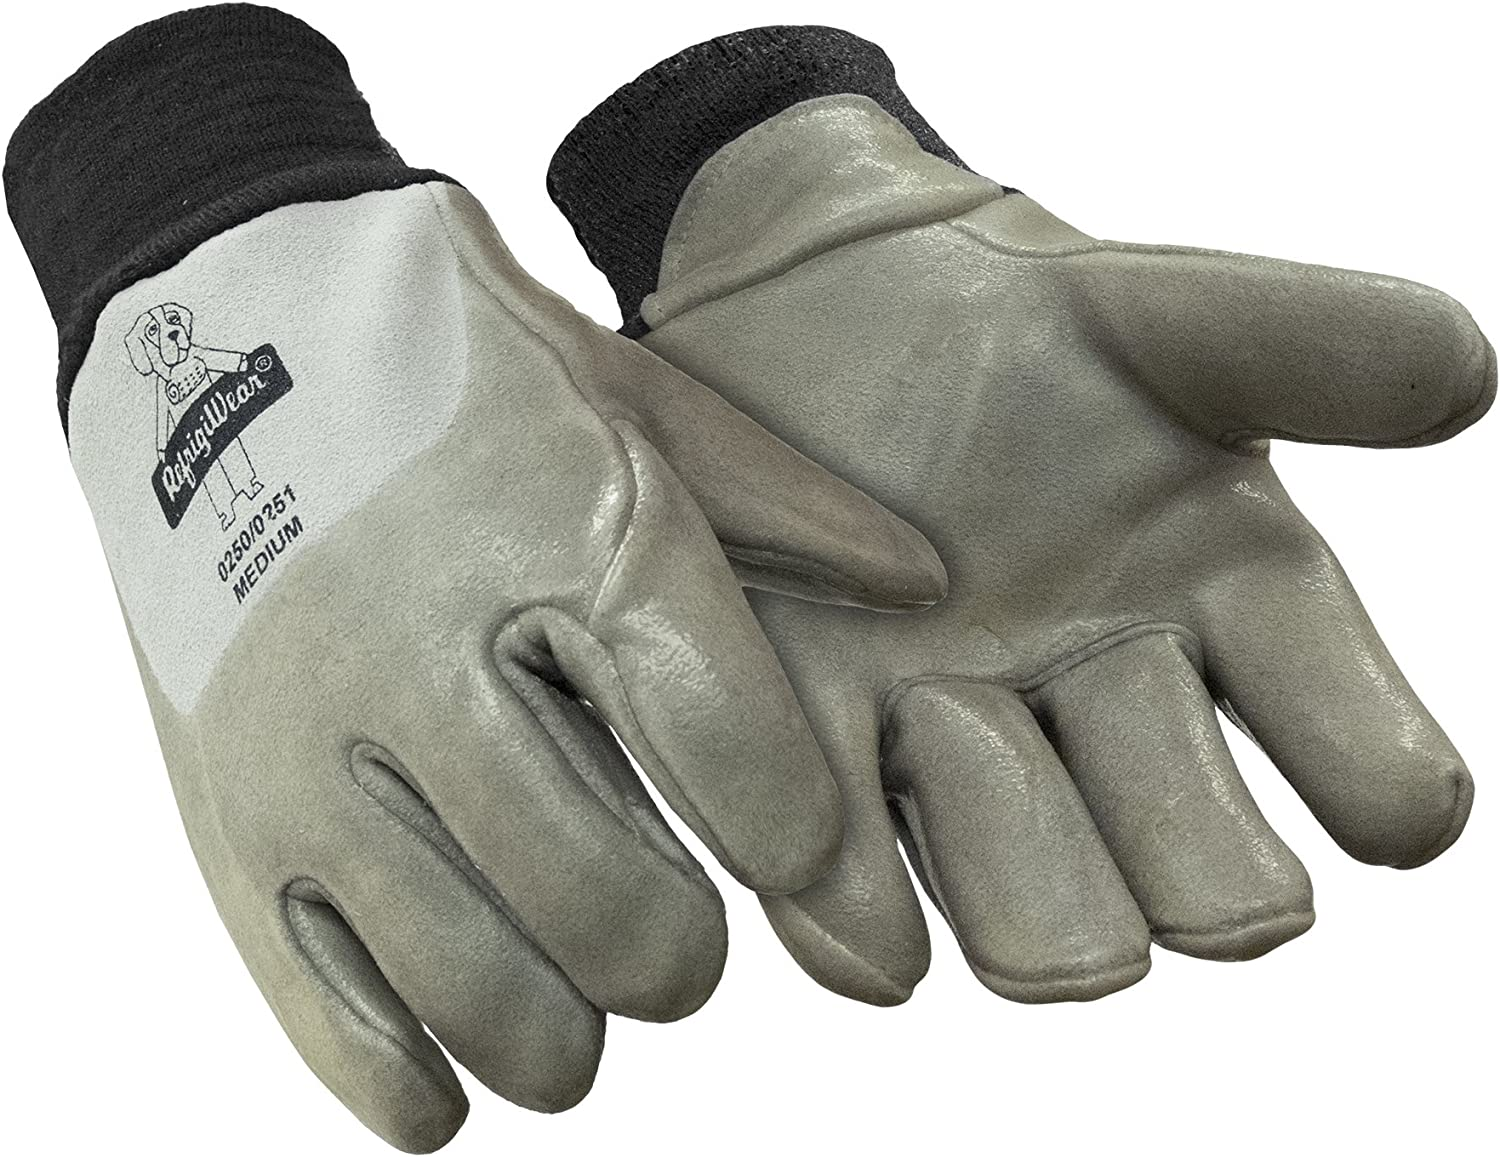 RefrigiWear Insulated Fleece Lined Deerskin Leather Gloves with Nitrile Coating